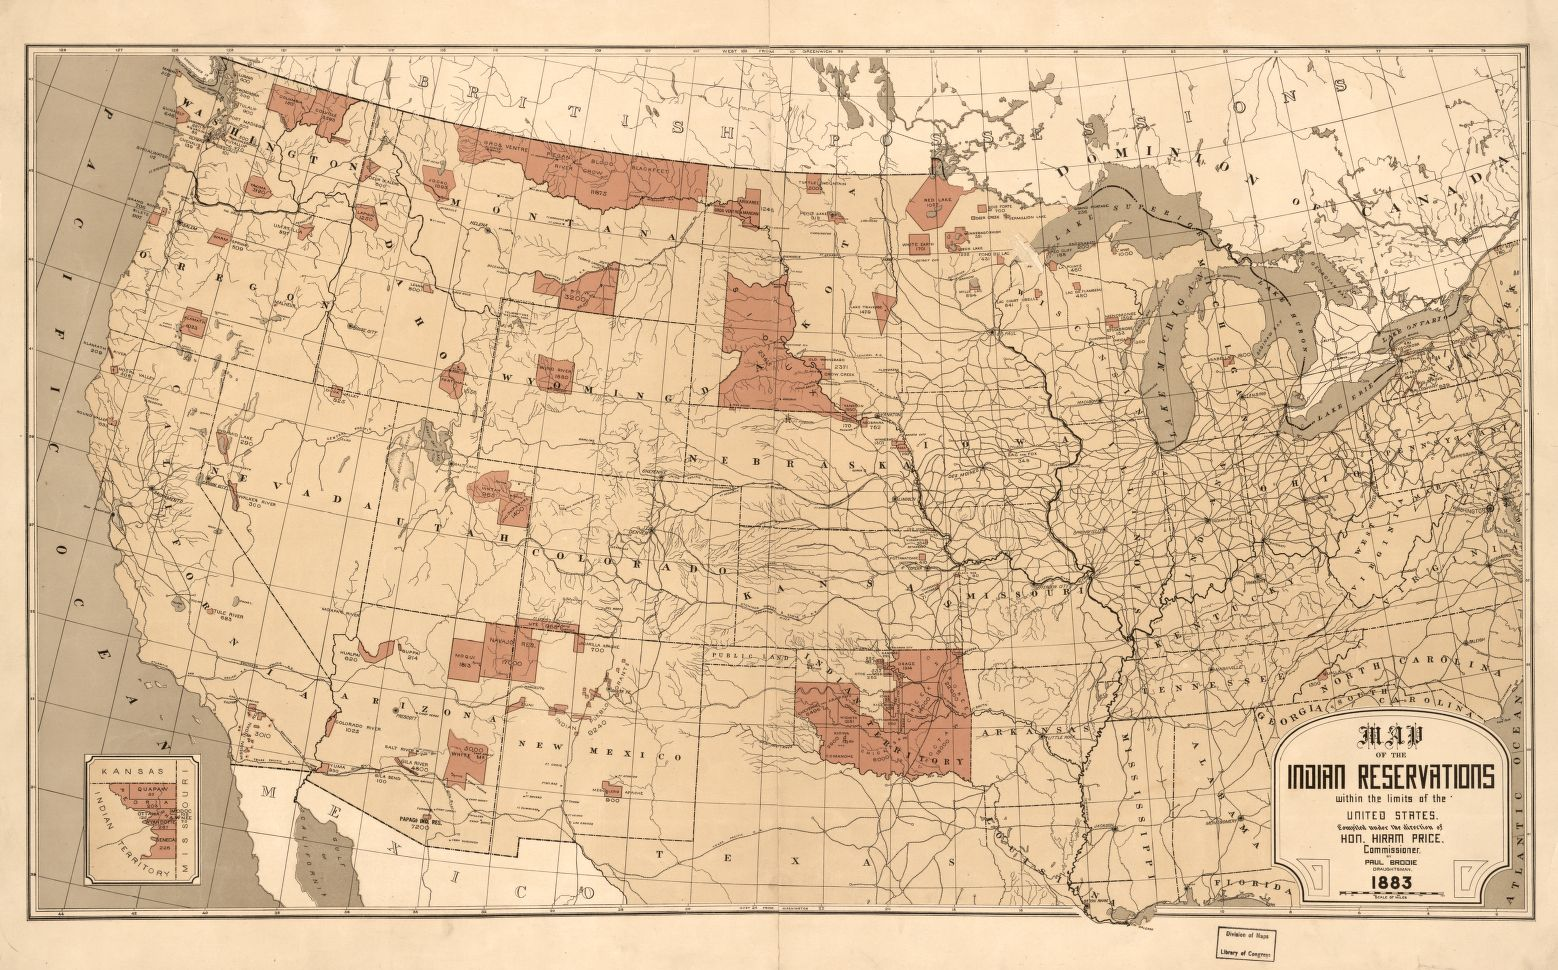 1883 map showing #NativeAmerican reservations within the #USA  https://t.co/eqkRWVN5nT https://t.co/7AY68HanH4